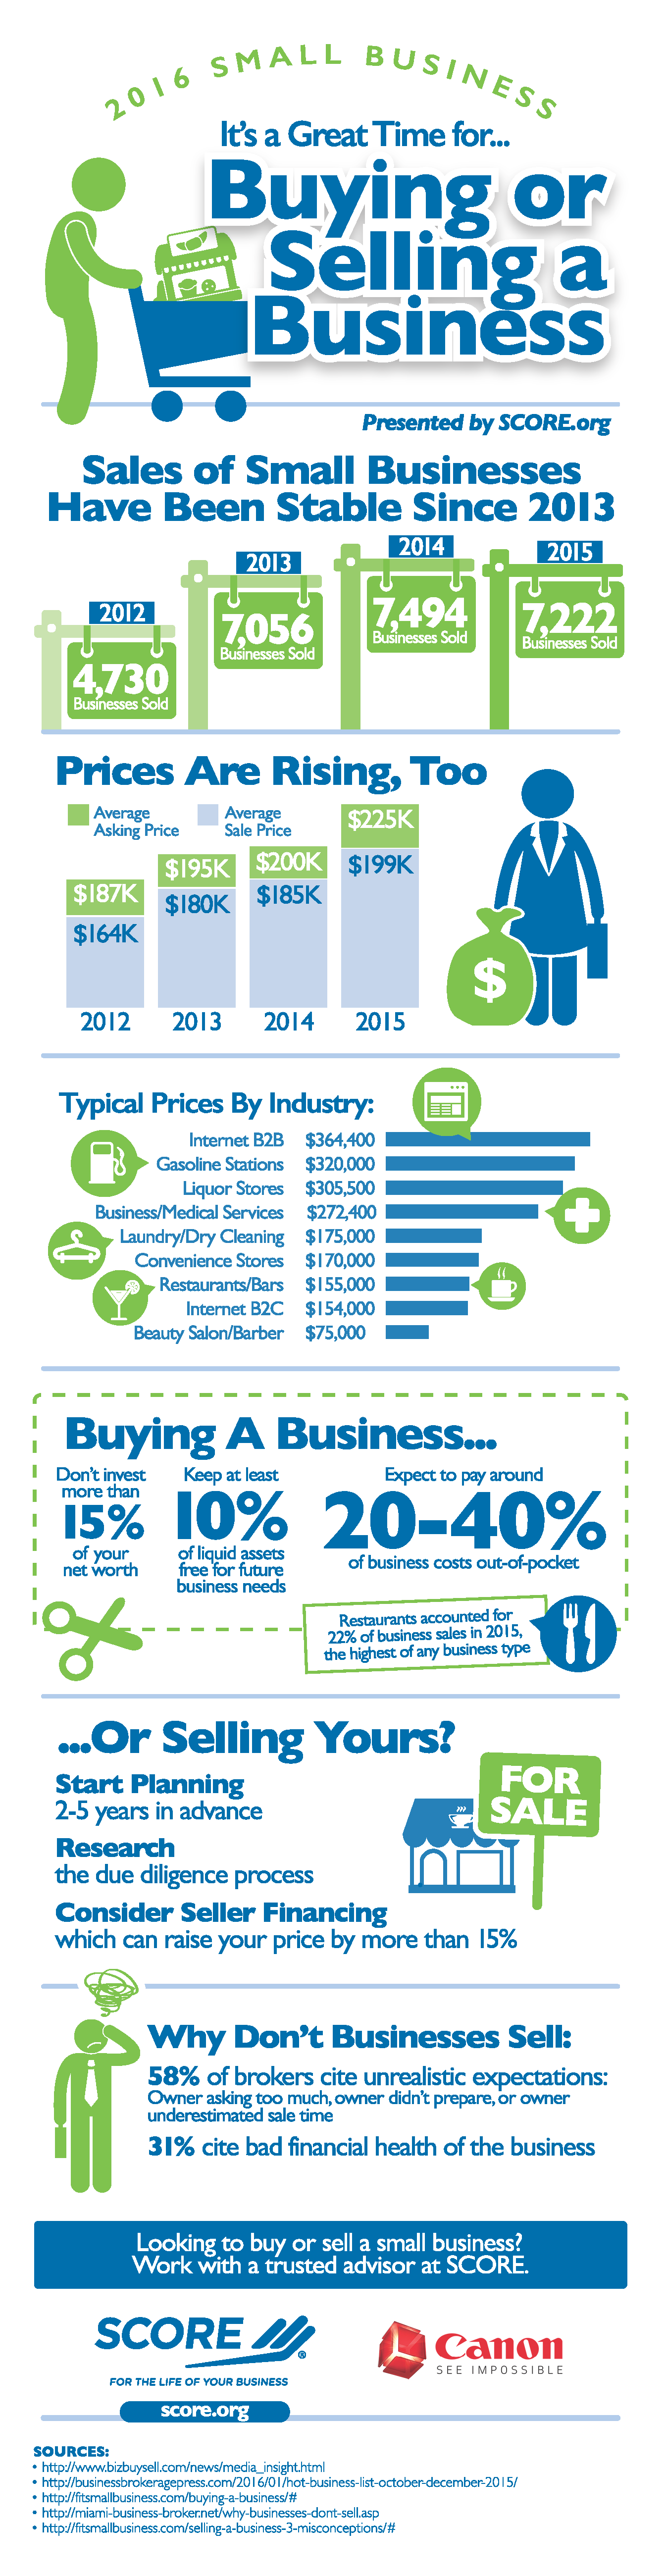 Infographic: It's a Great Time for Buying or Selling a Business